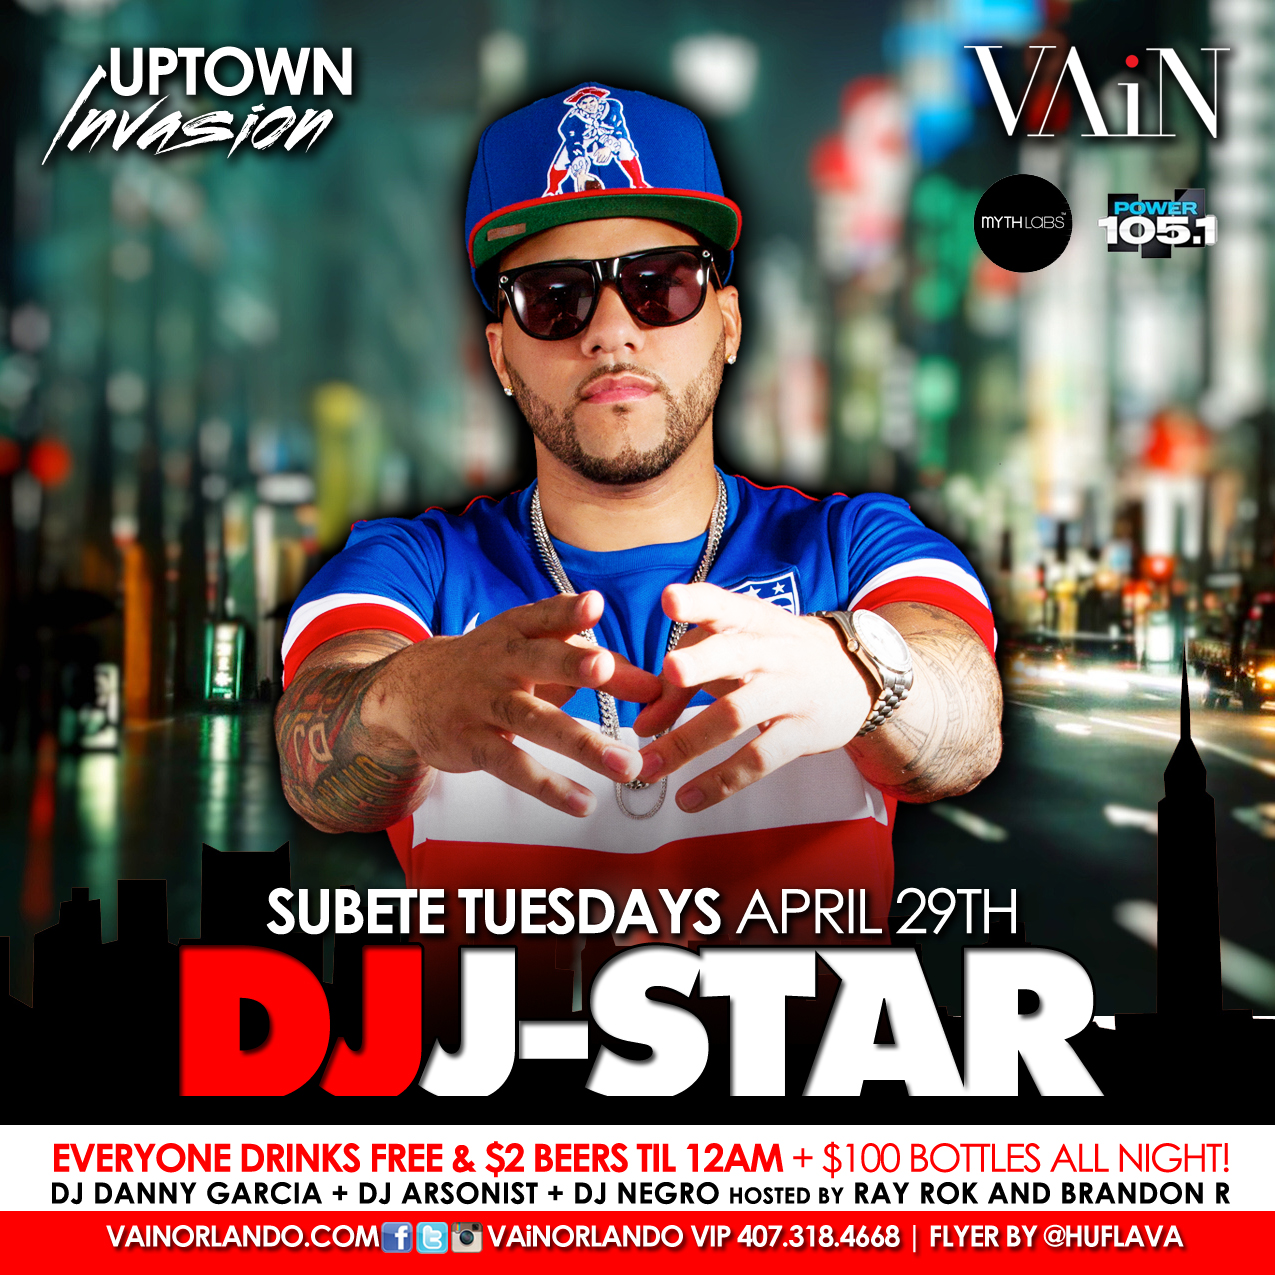 Uptown Invasion w/ DJ J-Star | Subete Tuesdays